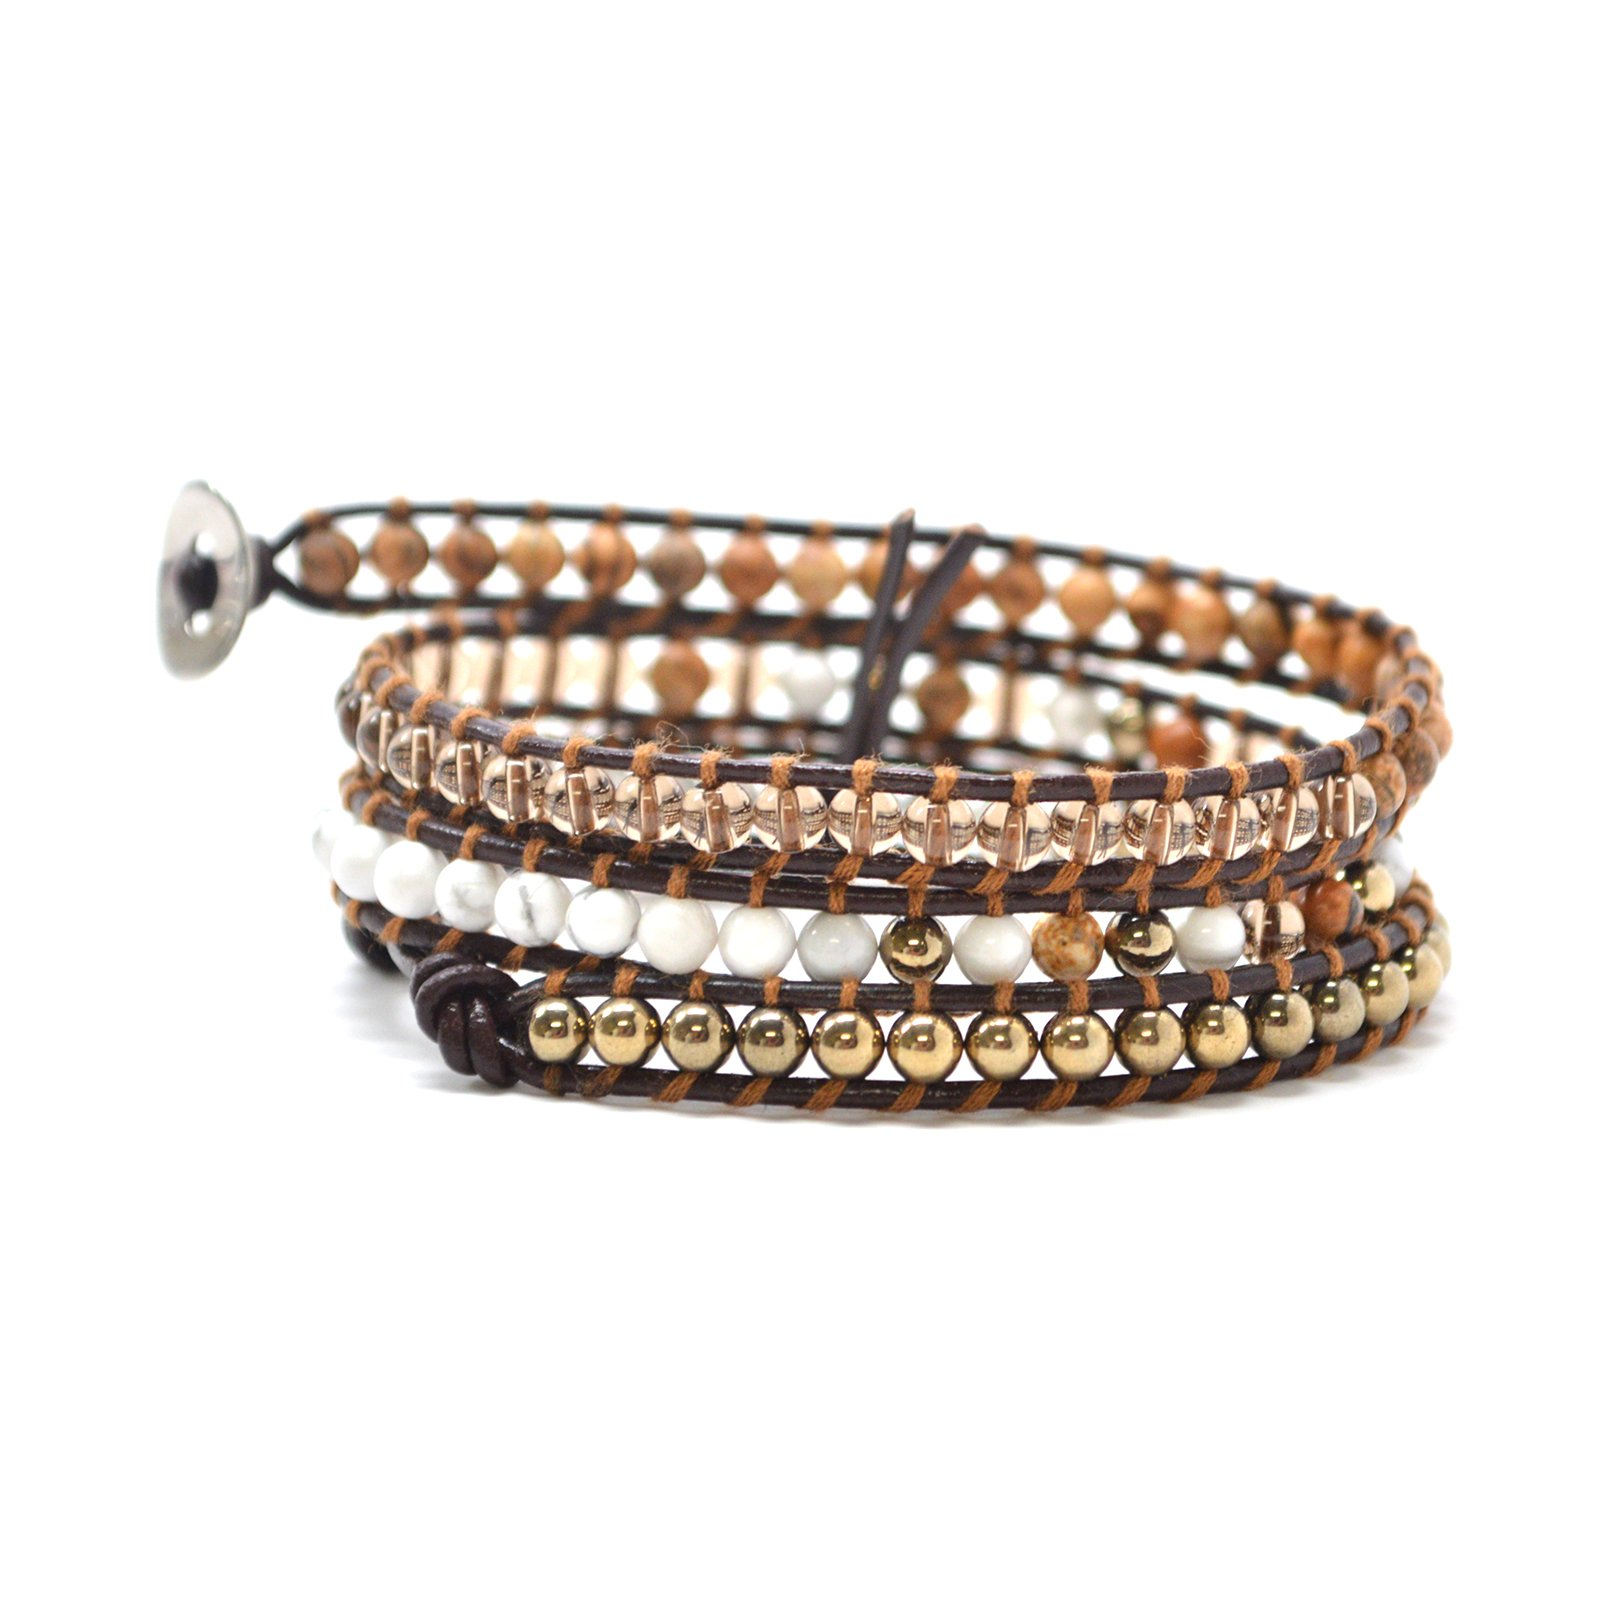 Organic Bohemian Boho Style Brown Gold White Clear Agate Beads 3-4 Leather Wrap Bracelet Jewelry Fashion